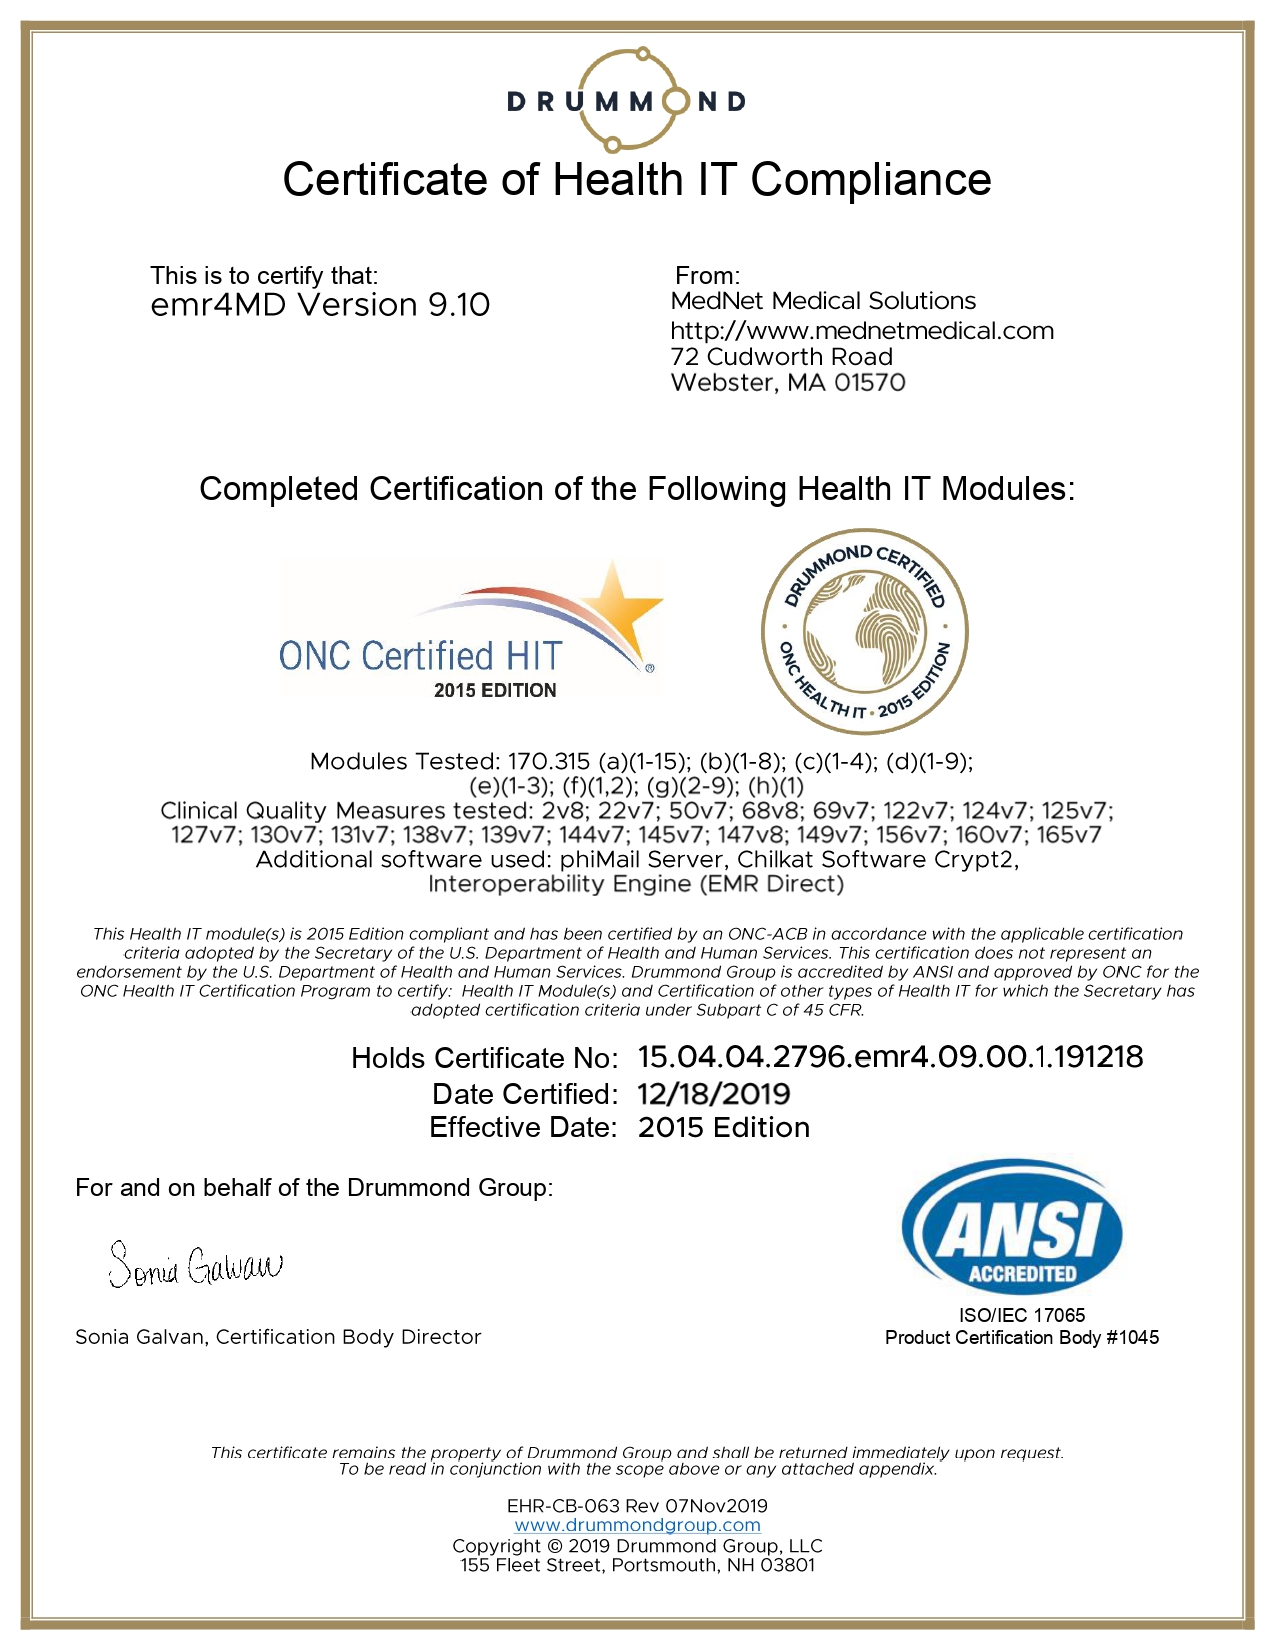 Drummond Group | ONC-ACB | Certified 2015 Edition HIT